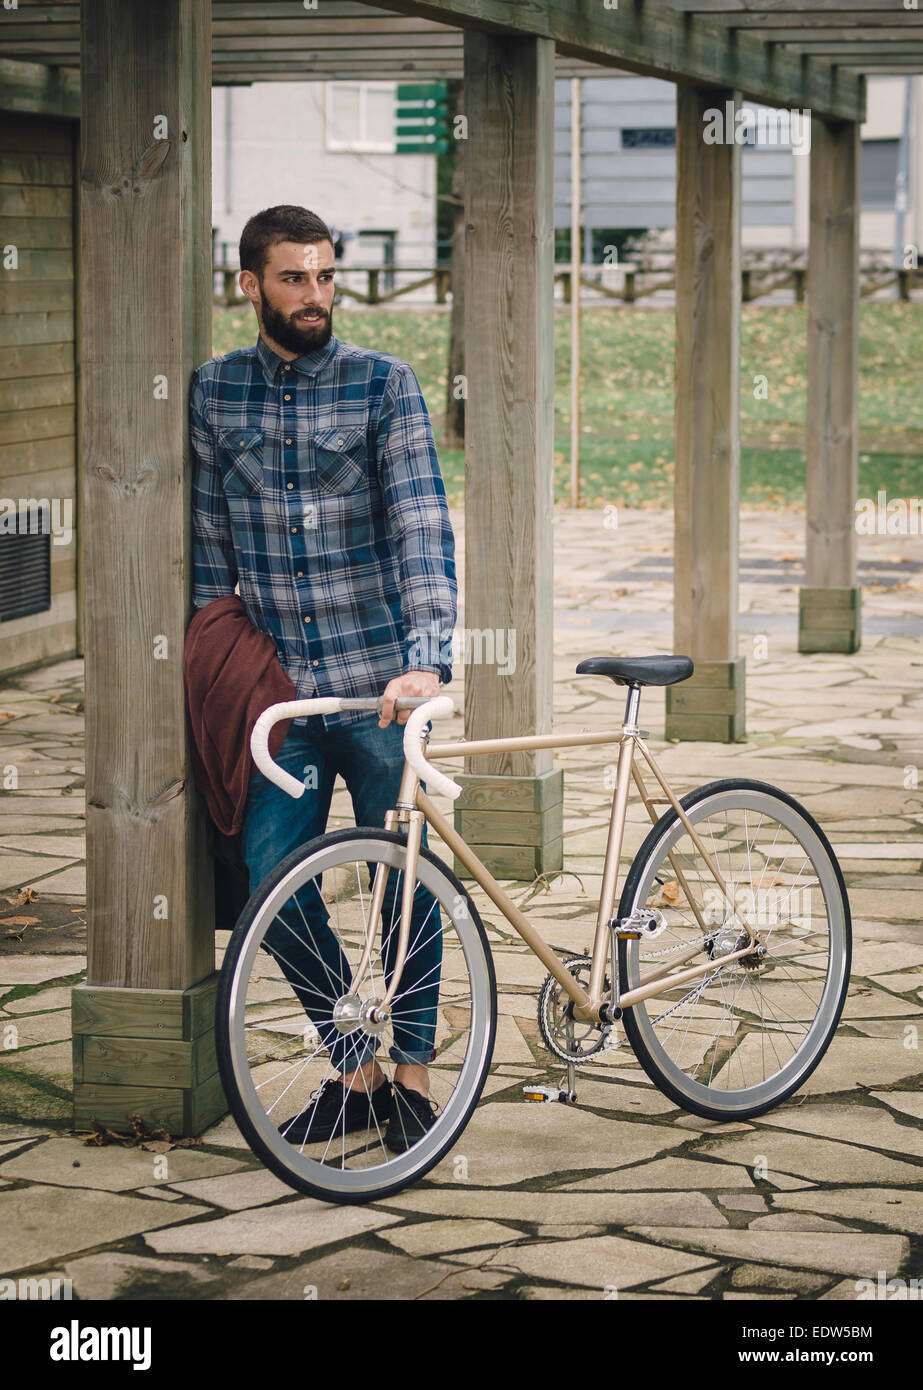 Hipster Man With A Fixie Bike In A Park Outdoors Stock Photo